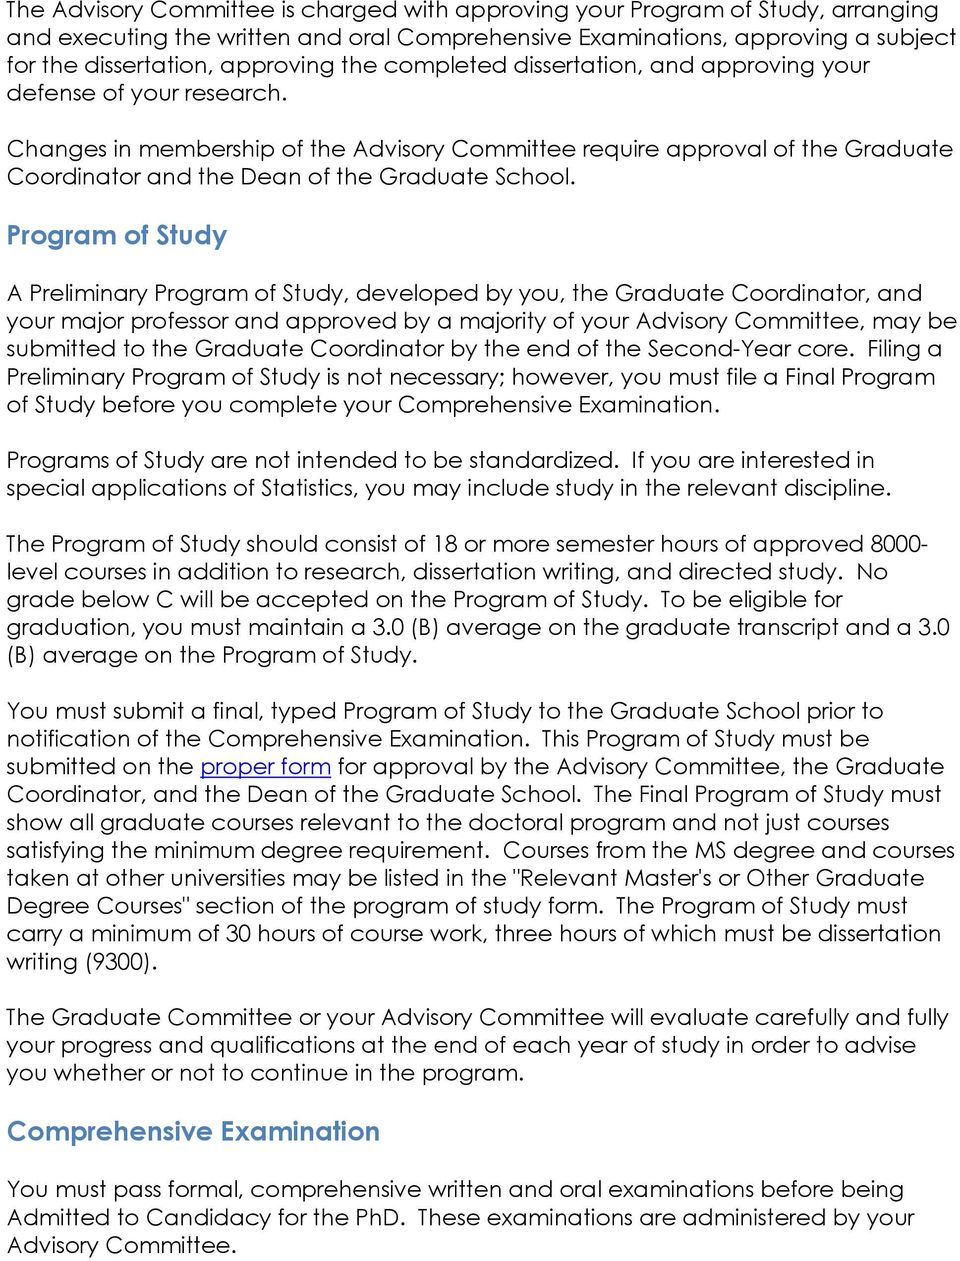 Changes in membership of the Advisory Committee require approval of the Graduate Coordinator and the Dean of the Graduate School.